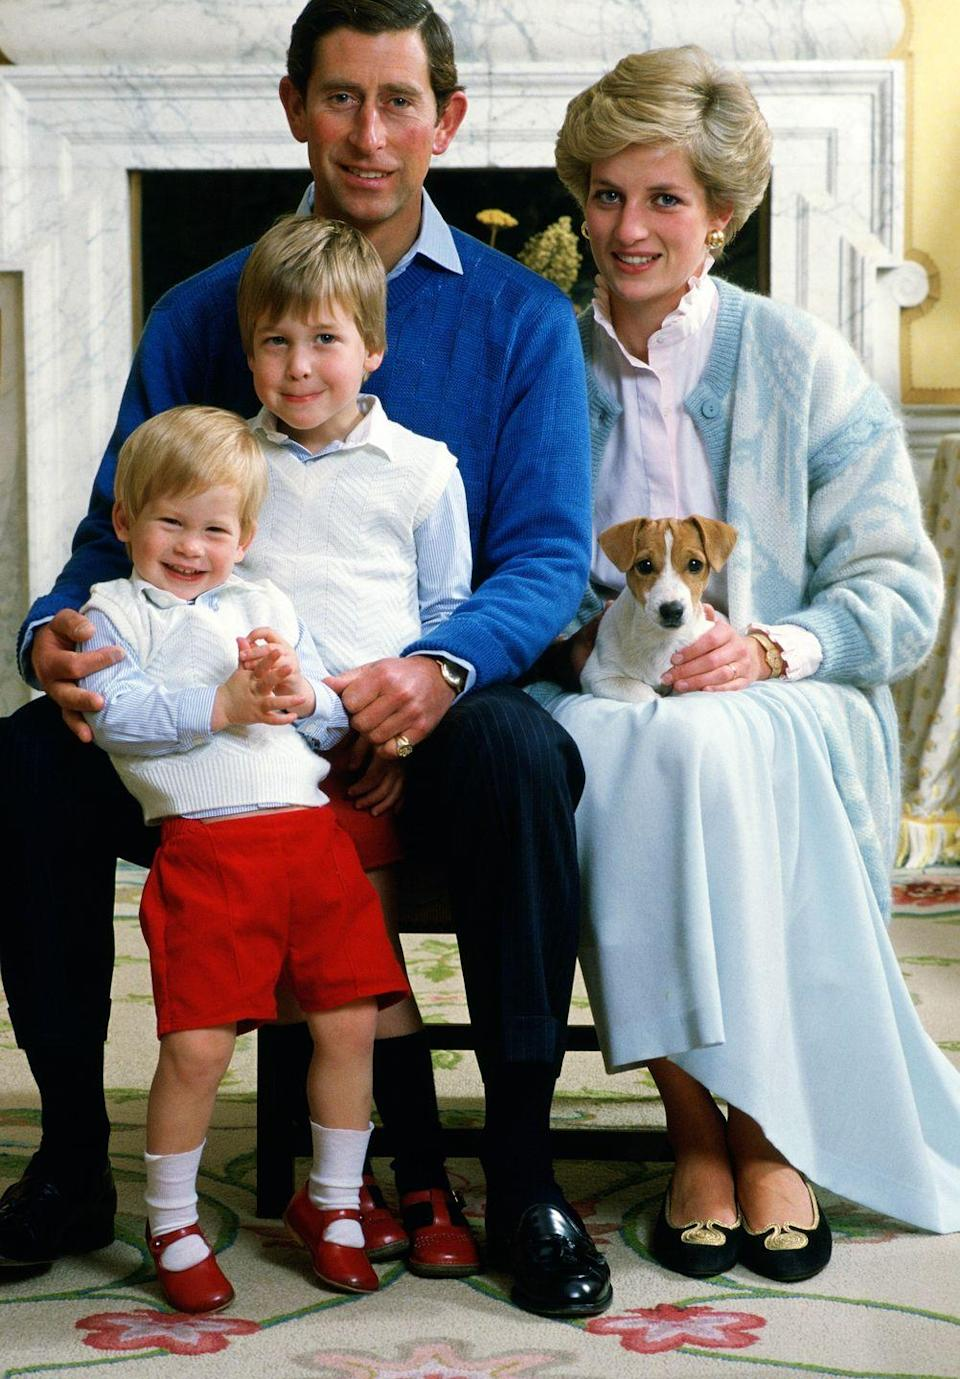 """<p>There are quite a few fashion restrictions on royal children, but the strangest is that young boys <a href=""""https://www.goodhousekeeping.com/beauty/fashion/g24472567/royal-outfits-hidden-meanings/?slide=8"""" rel=""""nofollow noopener"""" target=""""_blank"""" data-ylk=""""slk:are expected to wear shorts in public"""" class=""""link rapid-noclick-resp"""">are expected to wear shorts in public</a>. This rule is founded on the notion that pants for young boys used to be viewed as middle class (gasp!). </p>"""